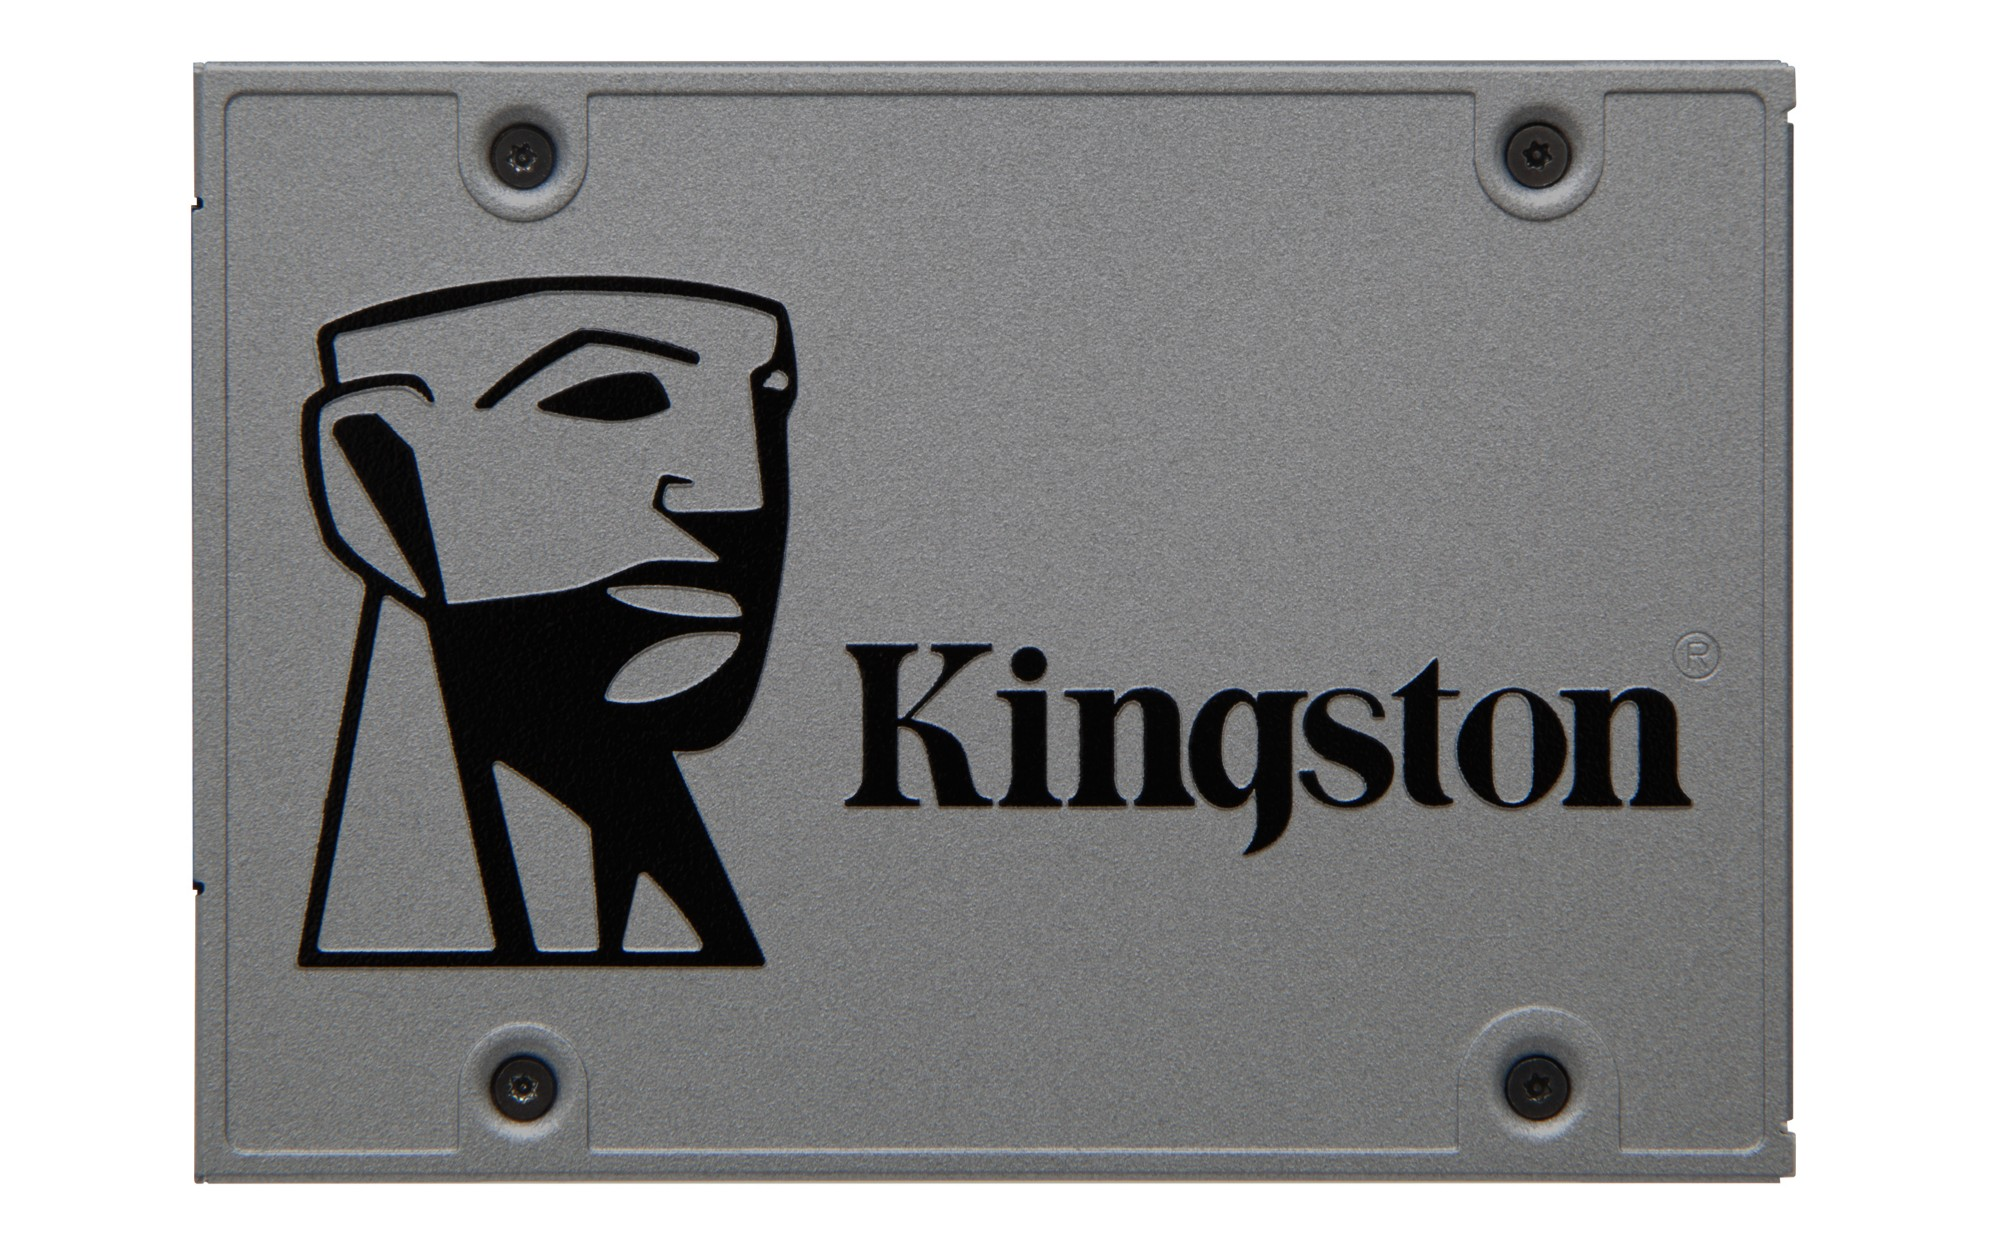 KINGSTON UV500 SSD 120GB STAND-ALONE DRIVE 2.5